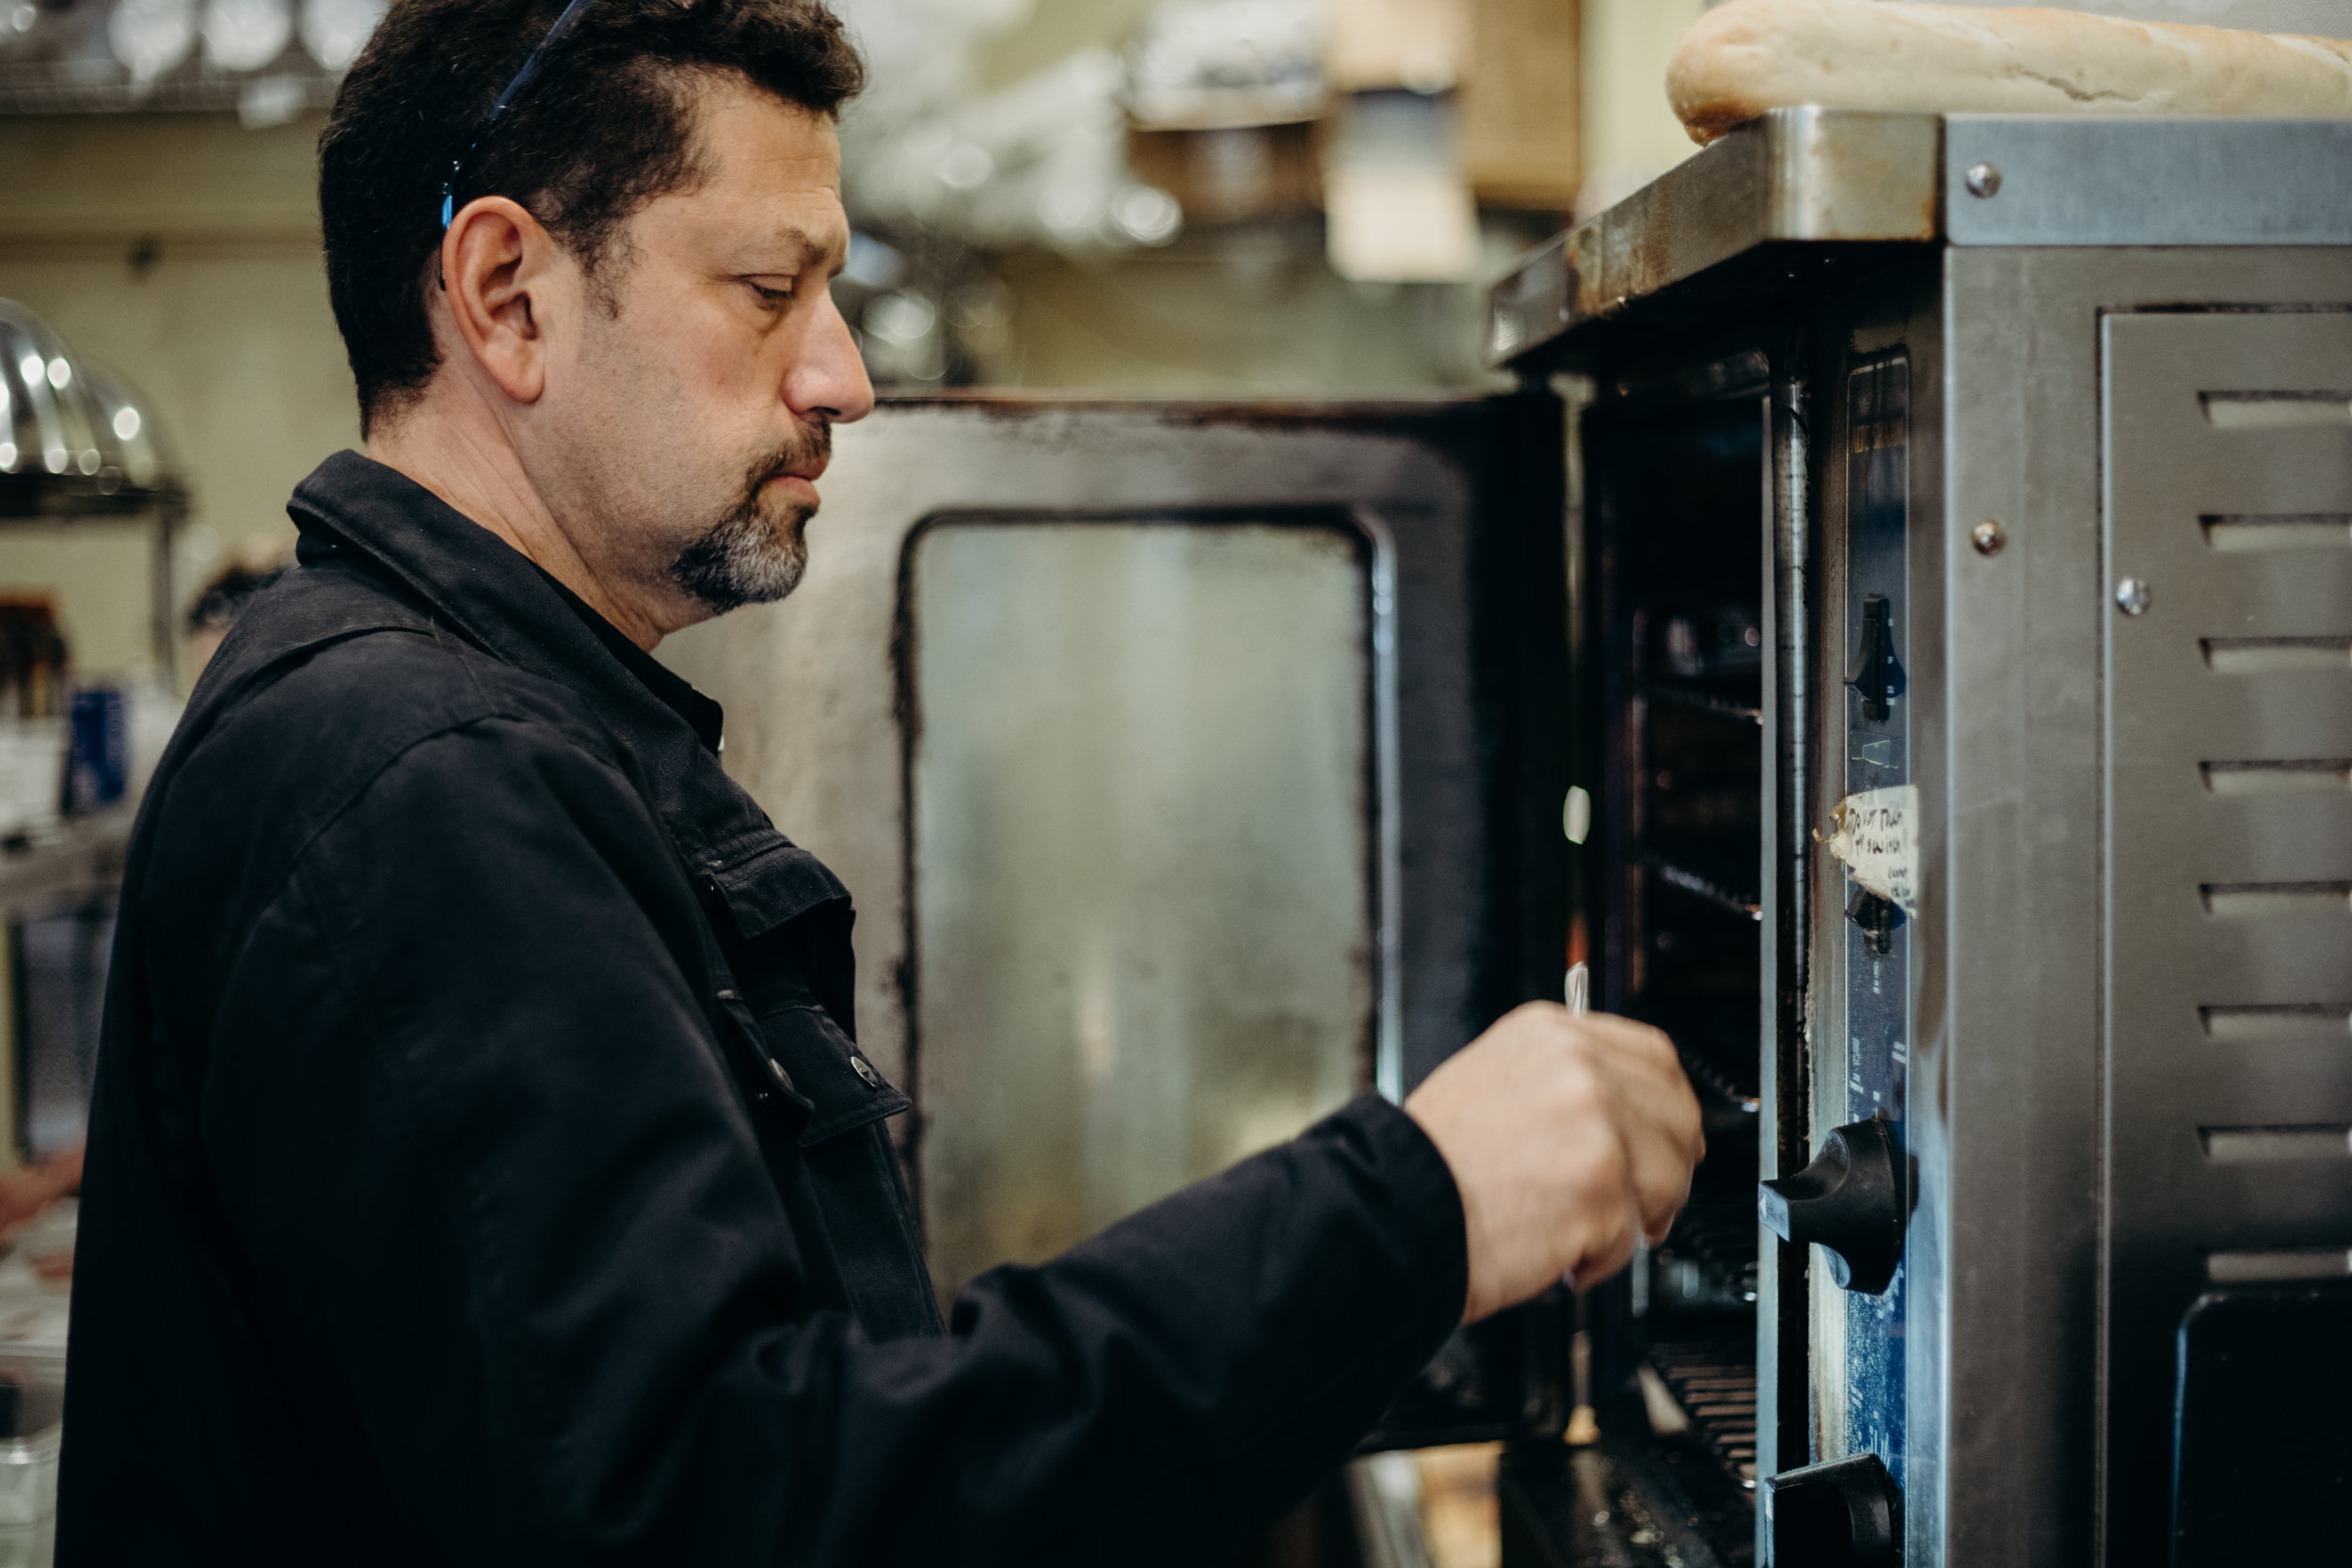 Repair Services - With over 30 years of appliance repair experience, we've serviced most makes & models of refrigerators, washers, dryers, dishwashers, cooktops, ovens & more.